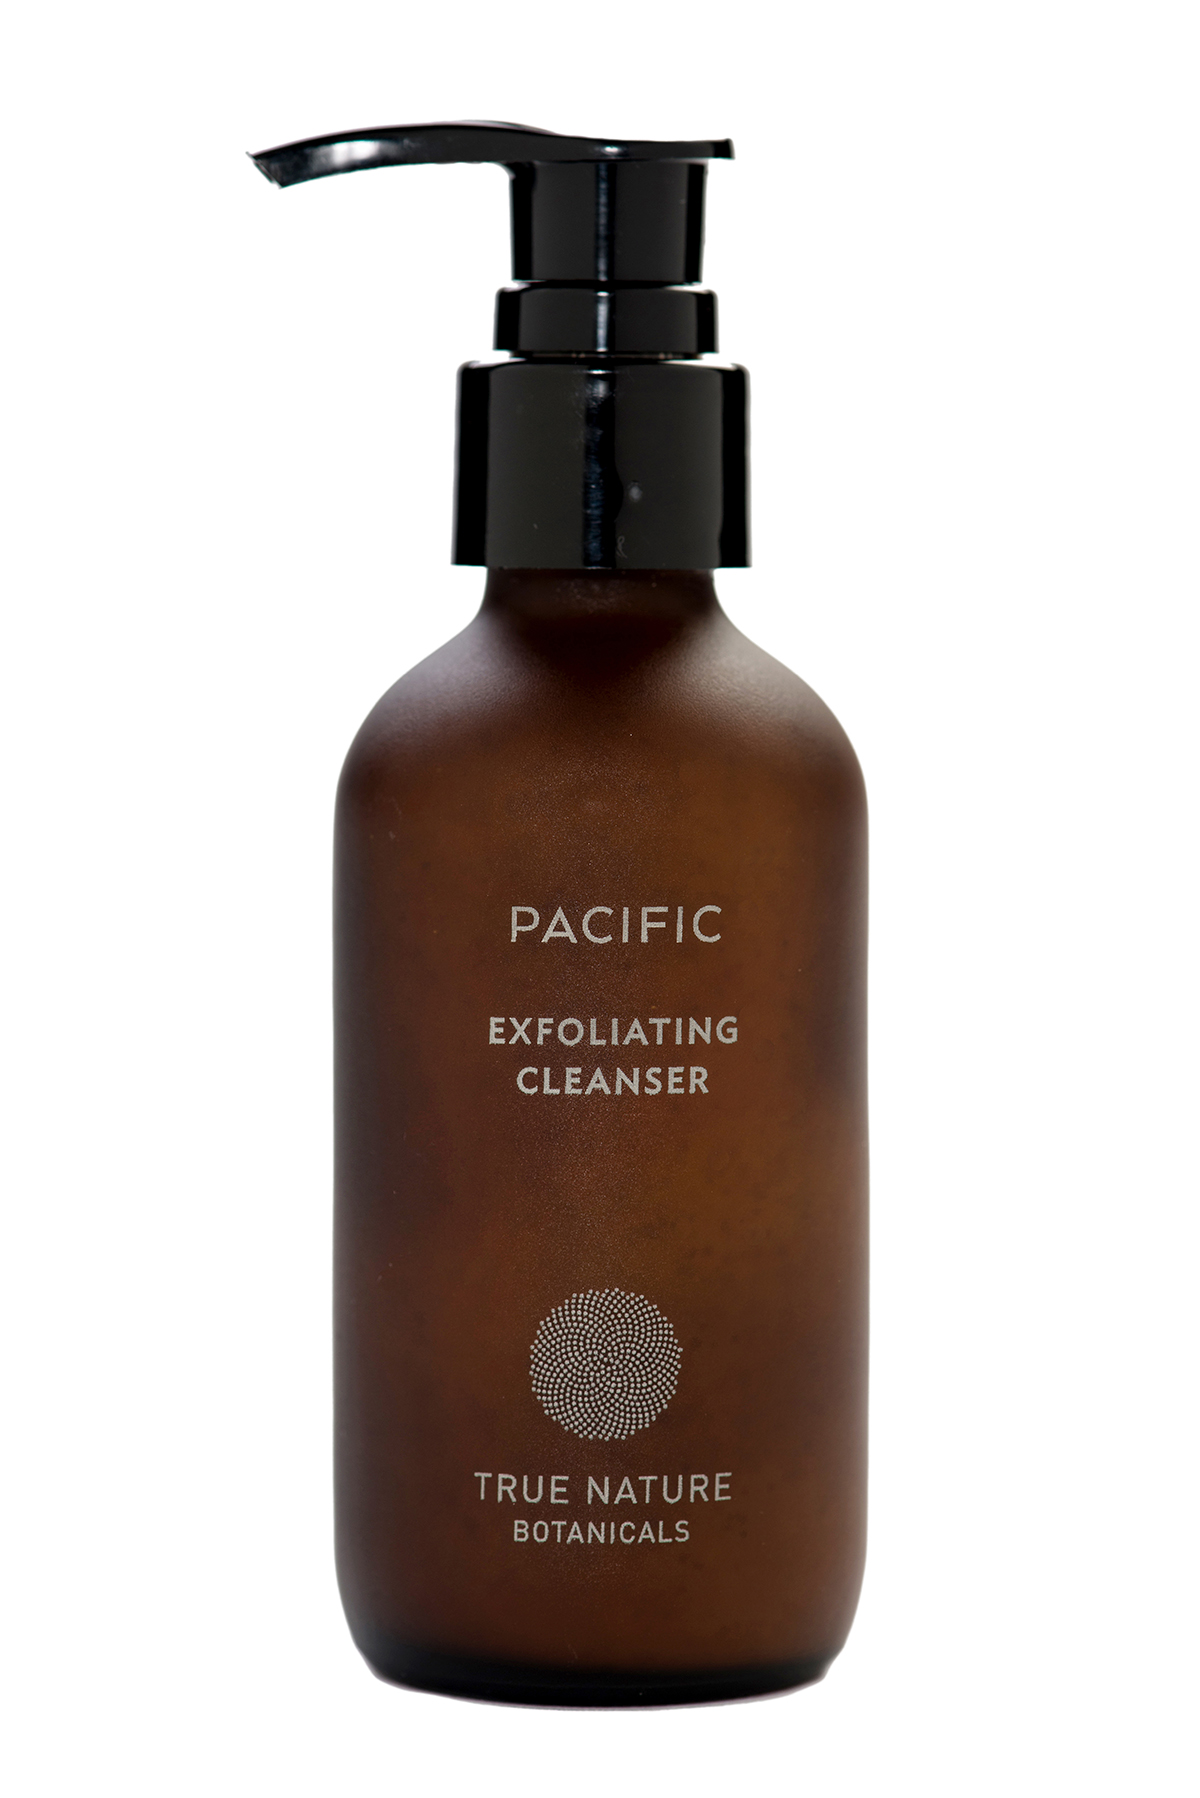 PRODUCT REVIEW:  EXFOLIATING CLEANSER BY TRUE NATURE BOTANICALS